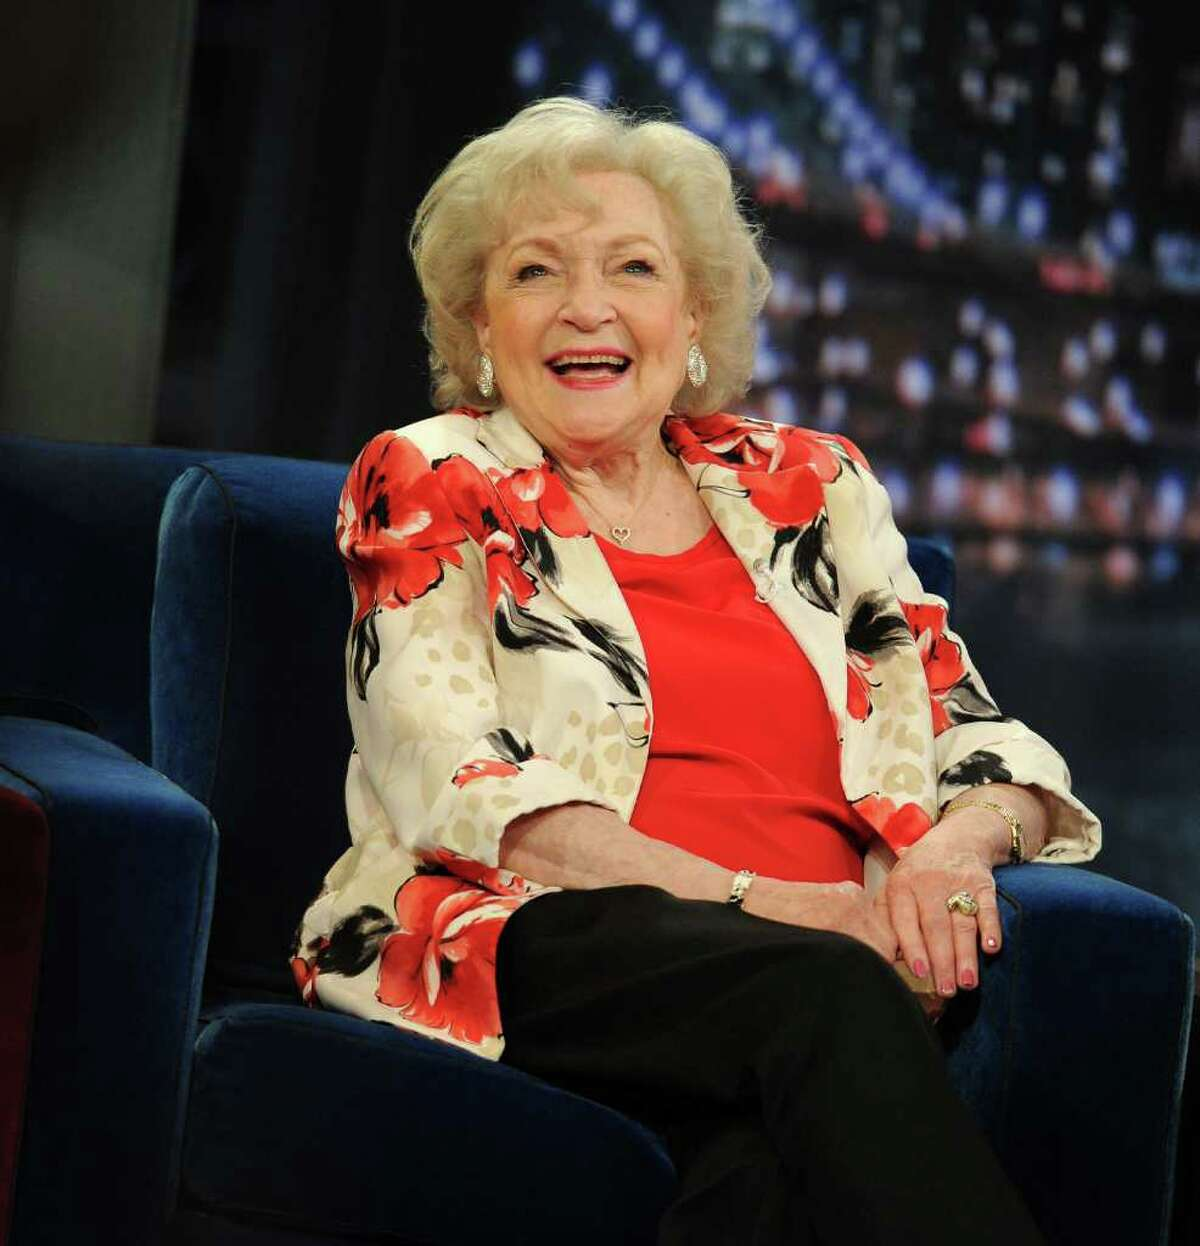 Actress Betty White has enjoyed a recent resurgence in popularity thanks to her hilarious role in 2009 film